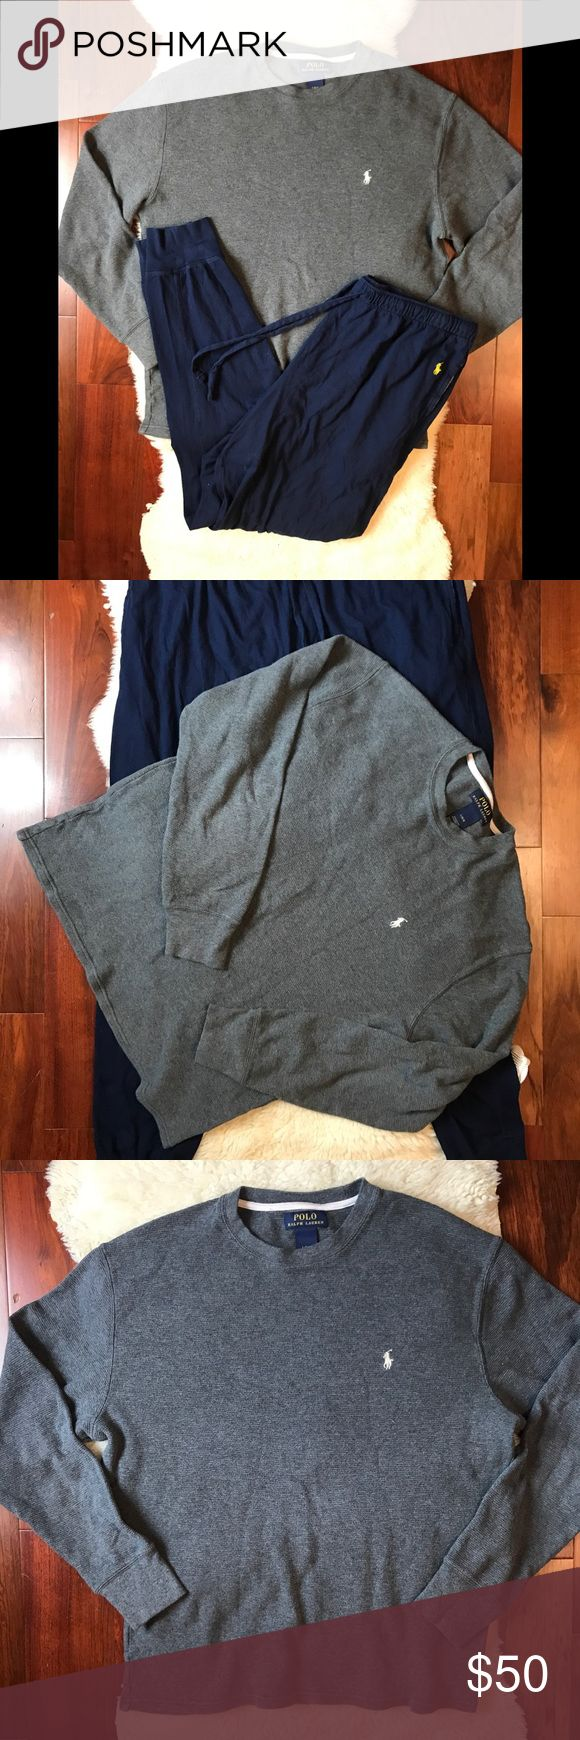 ♻️ Polo By Ralph Lauren Bundle of 2 lounge-ware L Polo By Ralph Lauren Set Of Cozy Lounge-ware   Tapered Drawstring Cotton Pants  Long sleeve Thermal Shirt  Both Size Large  Great Condition Polo by Ralph Lauren Pants Sweatpants & Joggers